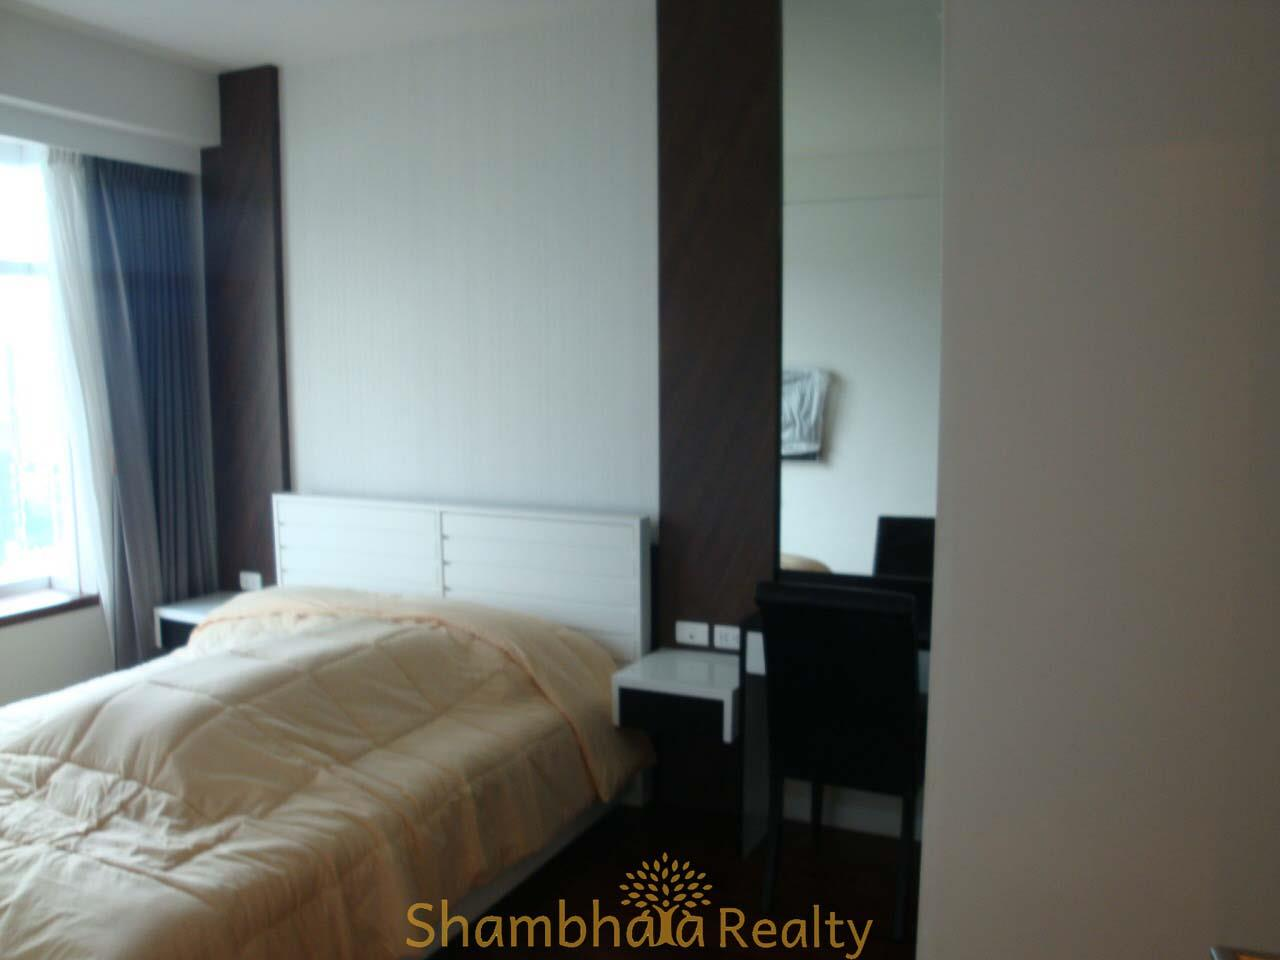 Shambhala Realty Agency's Circle Condominium Condominium for Rent in New Phetchaburi Road 2